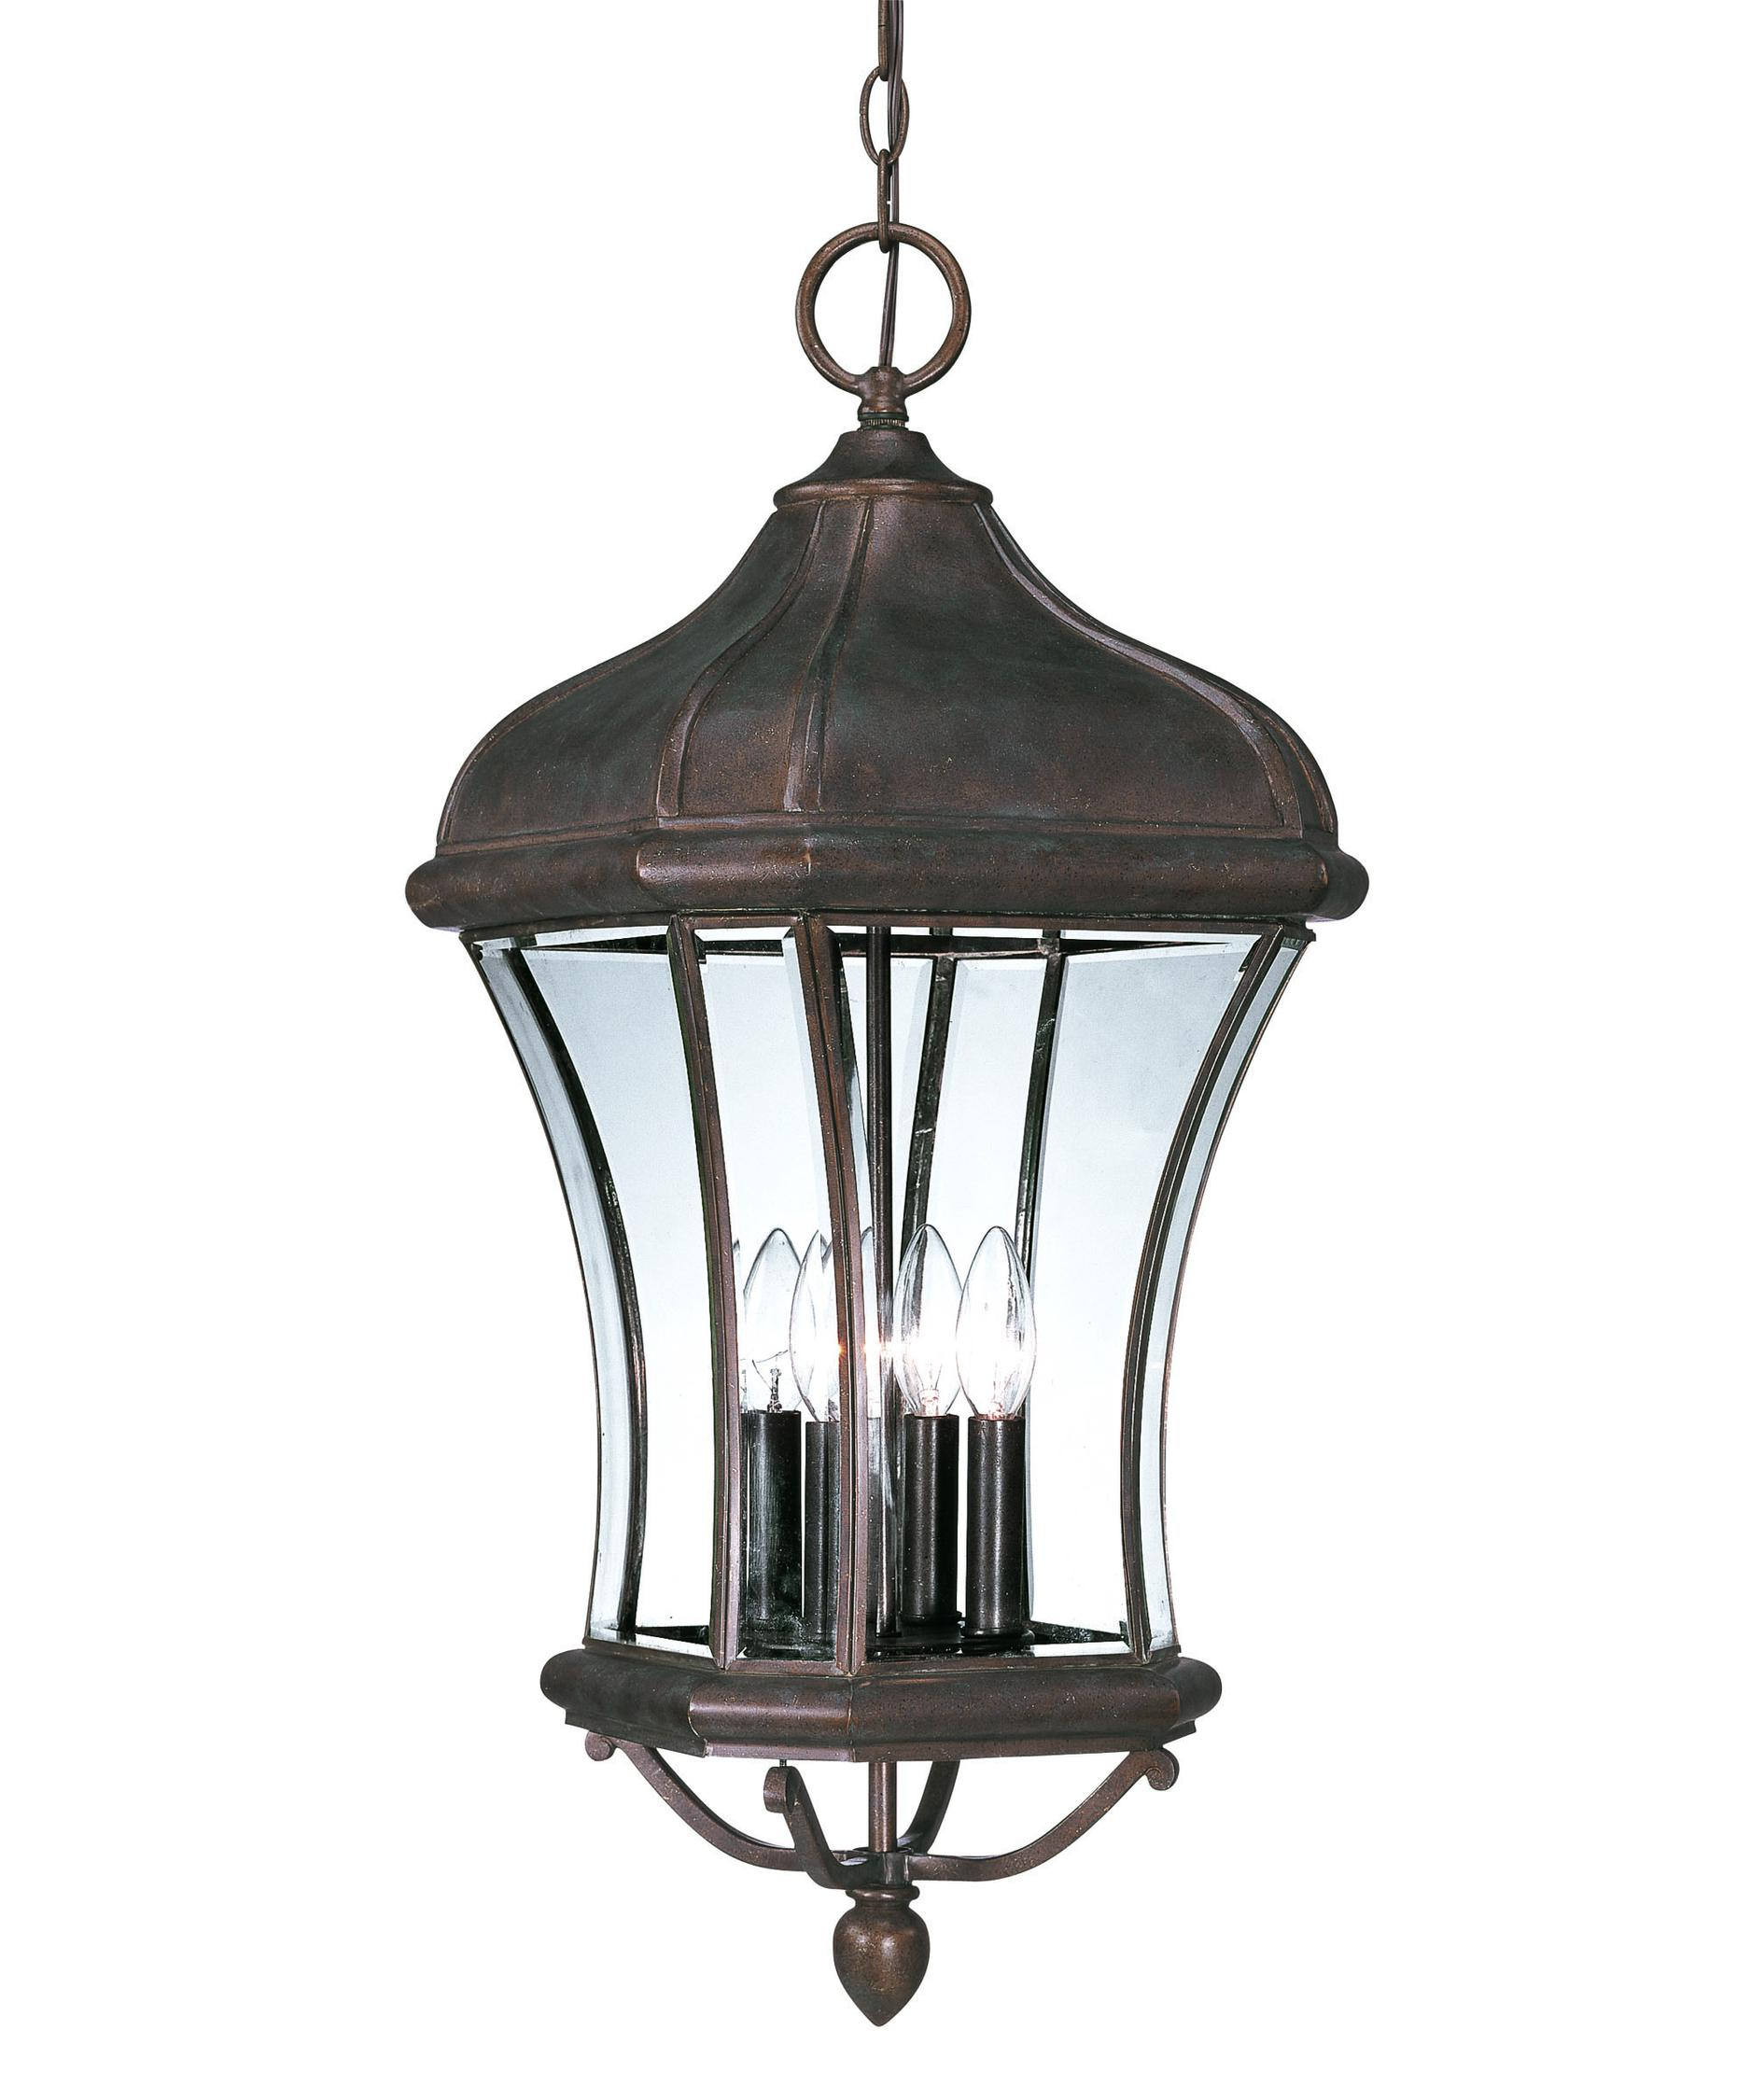 Outdoor hanging lamp - Shown In Walnut Patina Finish And Clear Beveled Glass